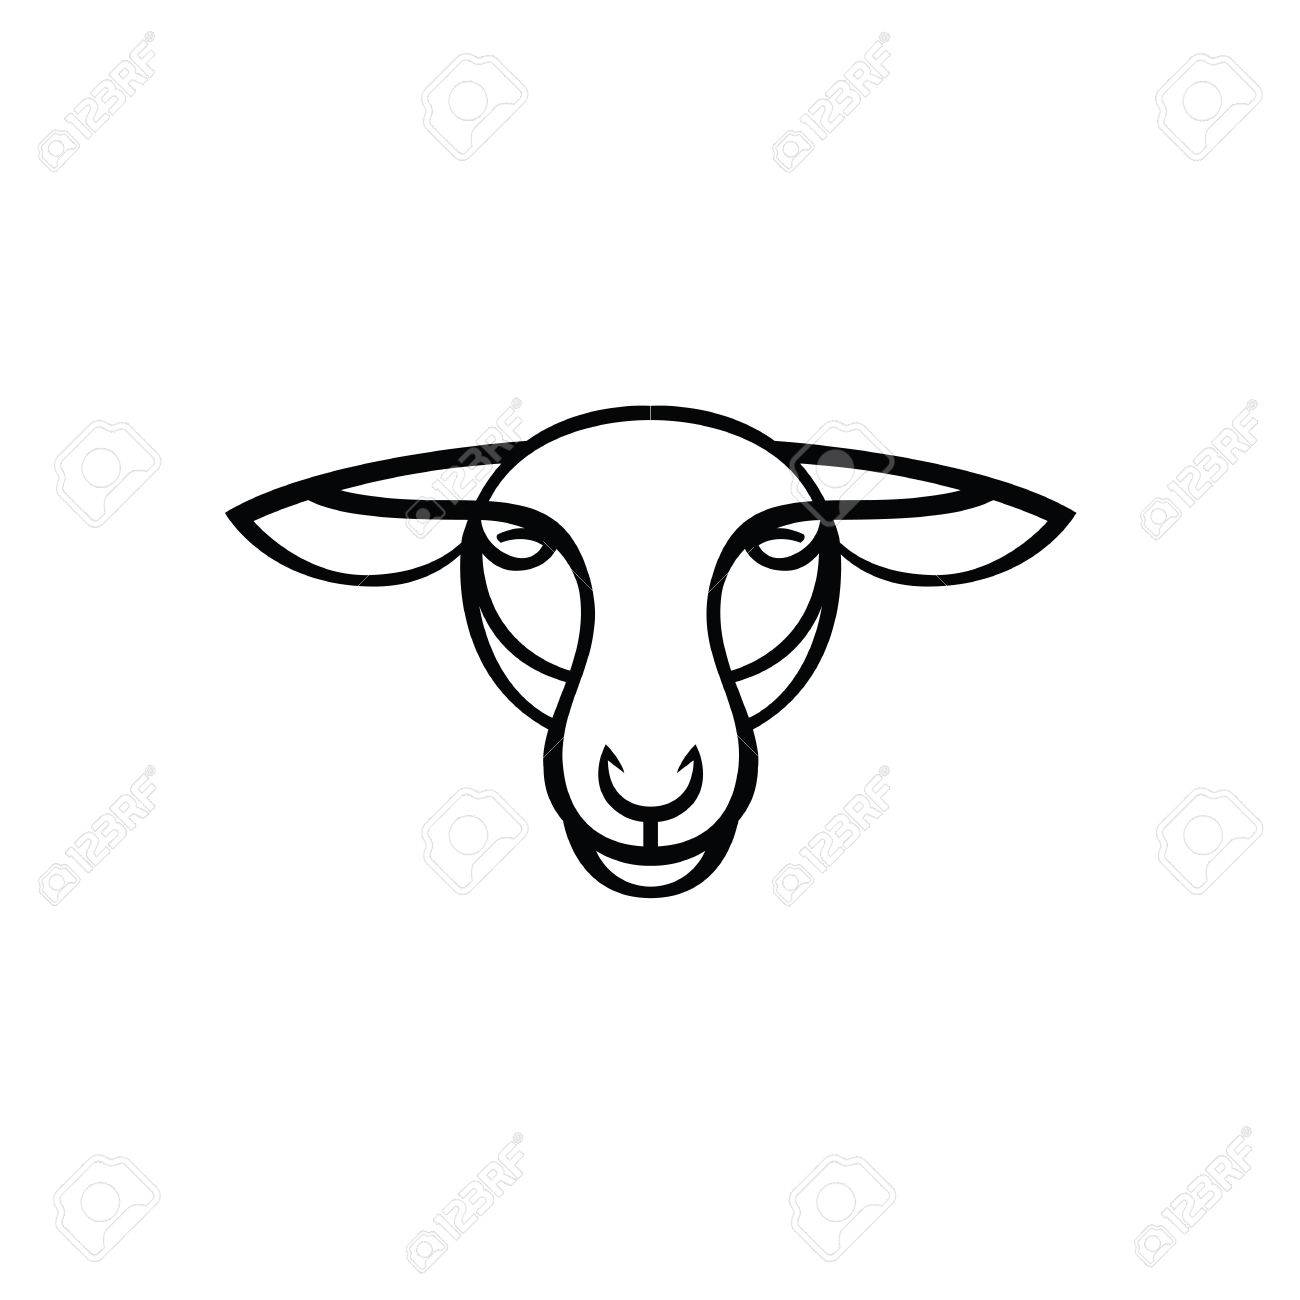 Linear Stylized Drawing - Head Of Sheep Or Ram - For Icon Or ...